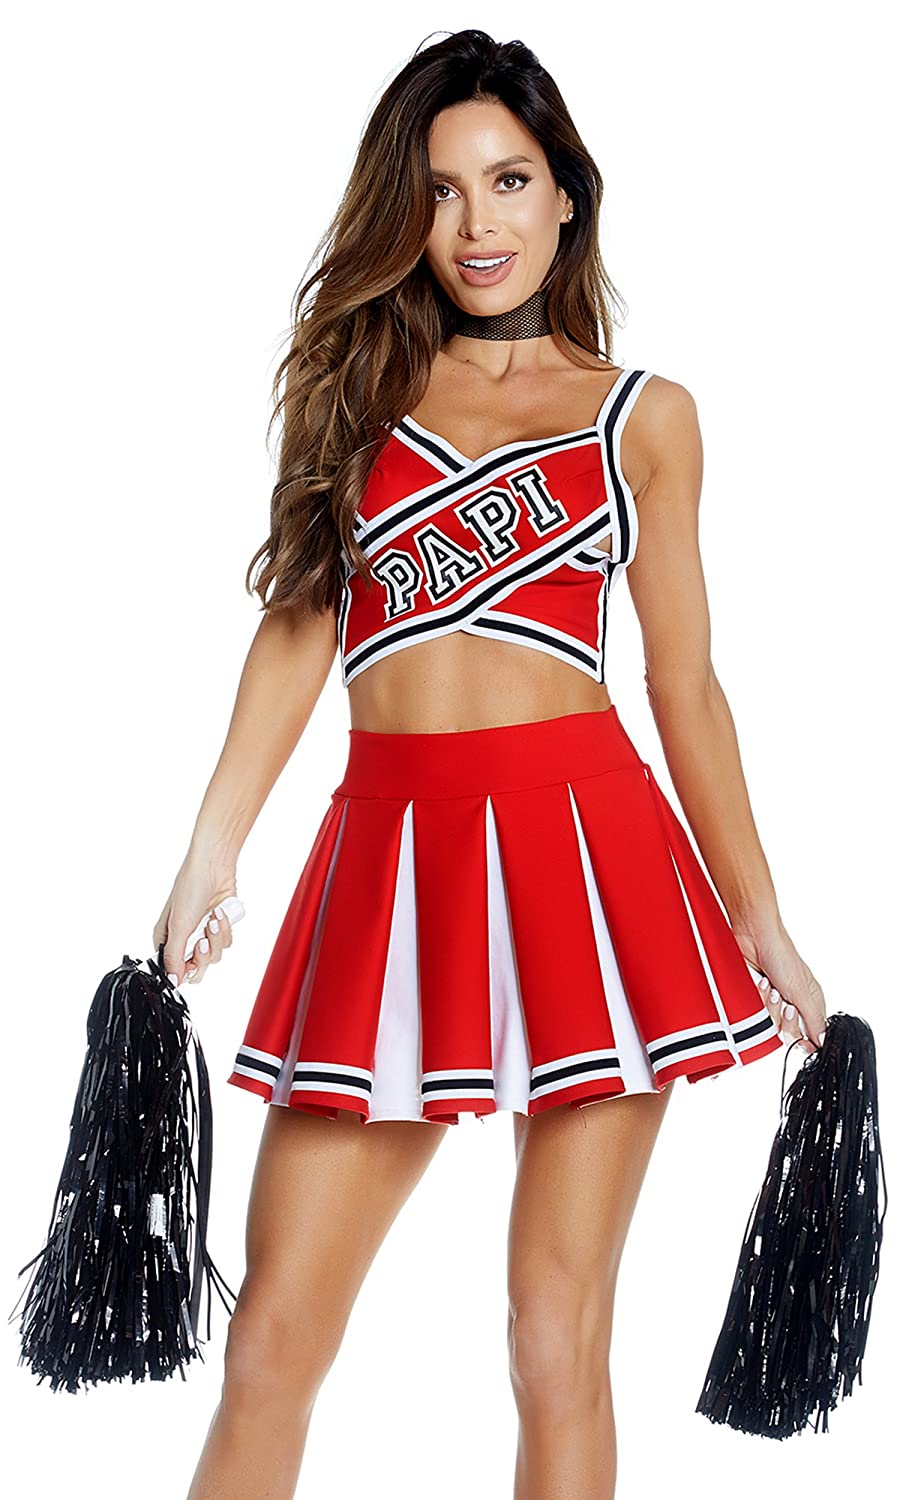 747b5cce21d9dc Top7  Papis Prize Sexy Cheerleader Costume. Wholesale ...